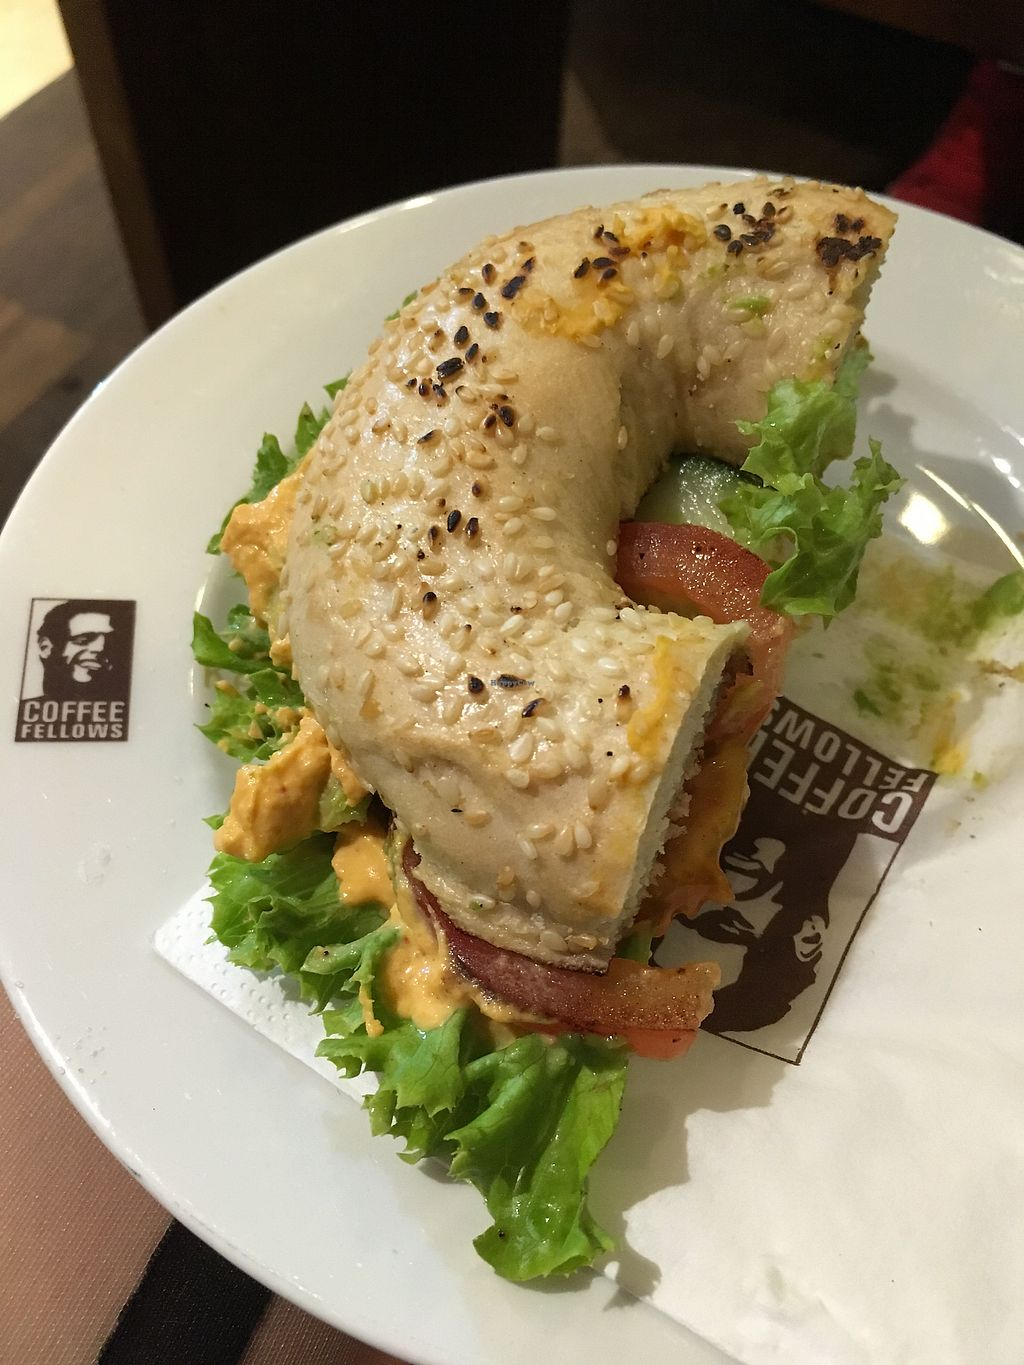 """Photo of Coffee Fellows  by <a href=""""/members/profile/Mici"""">Mici</a> <br/>Avocado Bagel ? <br/> August 22, 2017  - <a href='/contact/abuse/image/96397/295648'>Report</a>"""